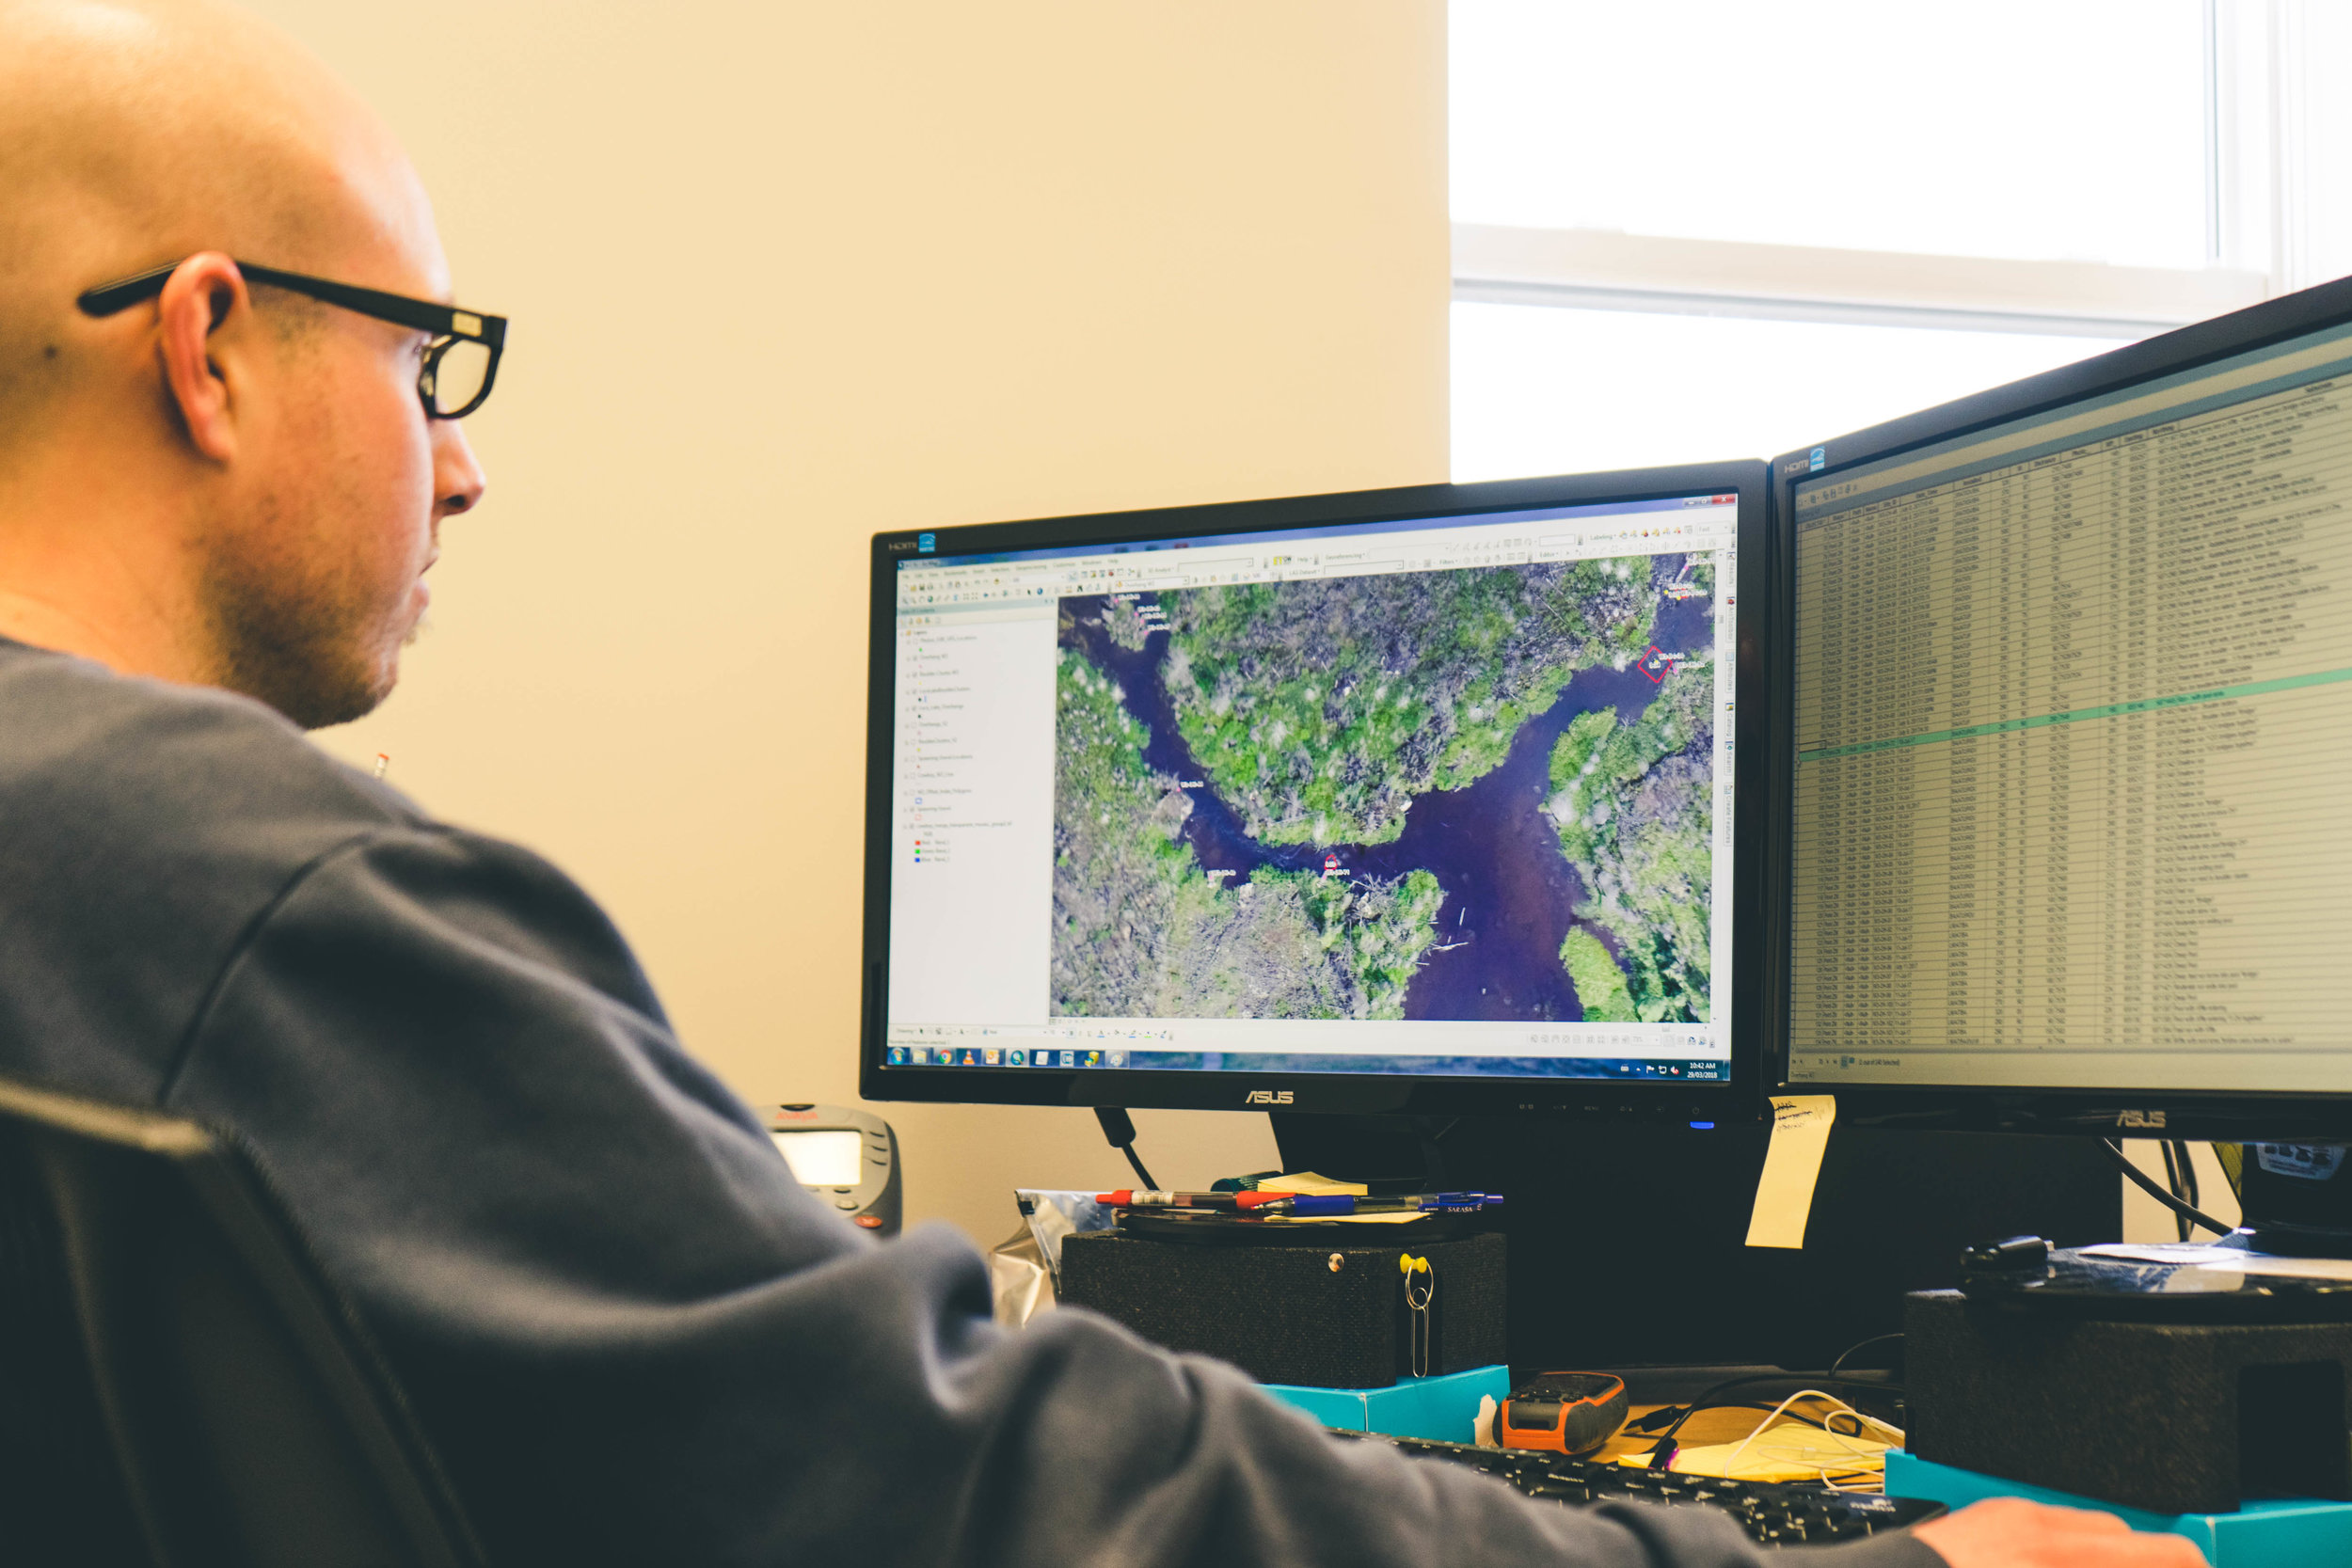 3D modelling, 3D analysis, Newfoundland spatial analysis